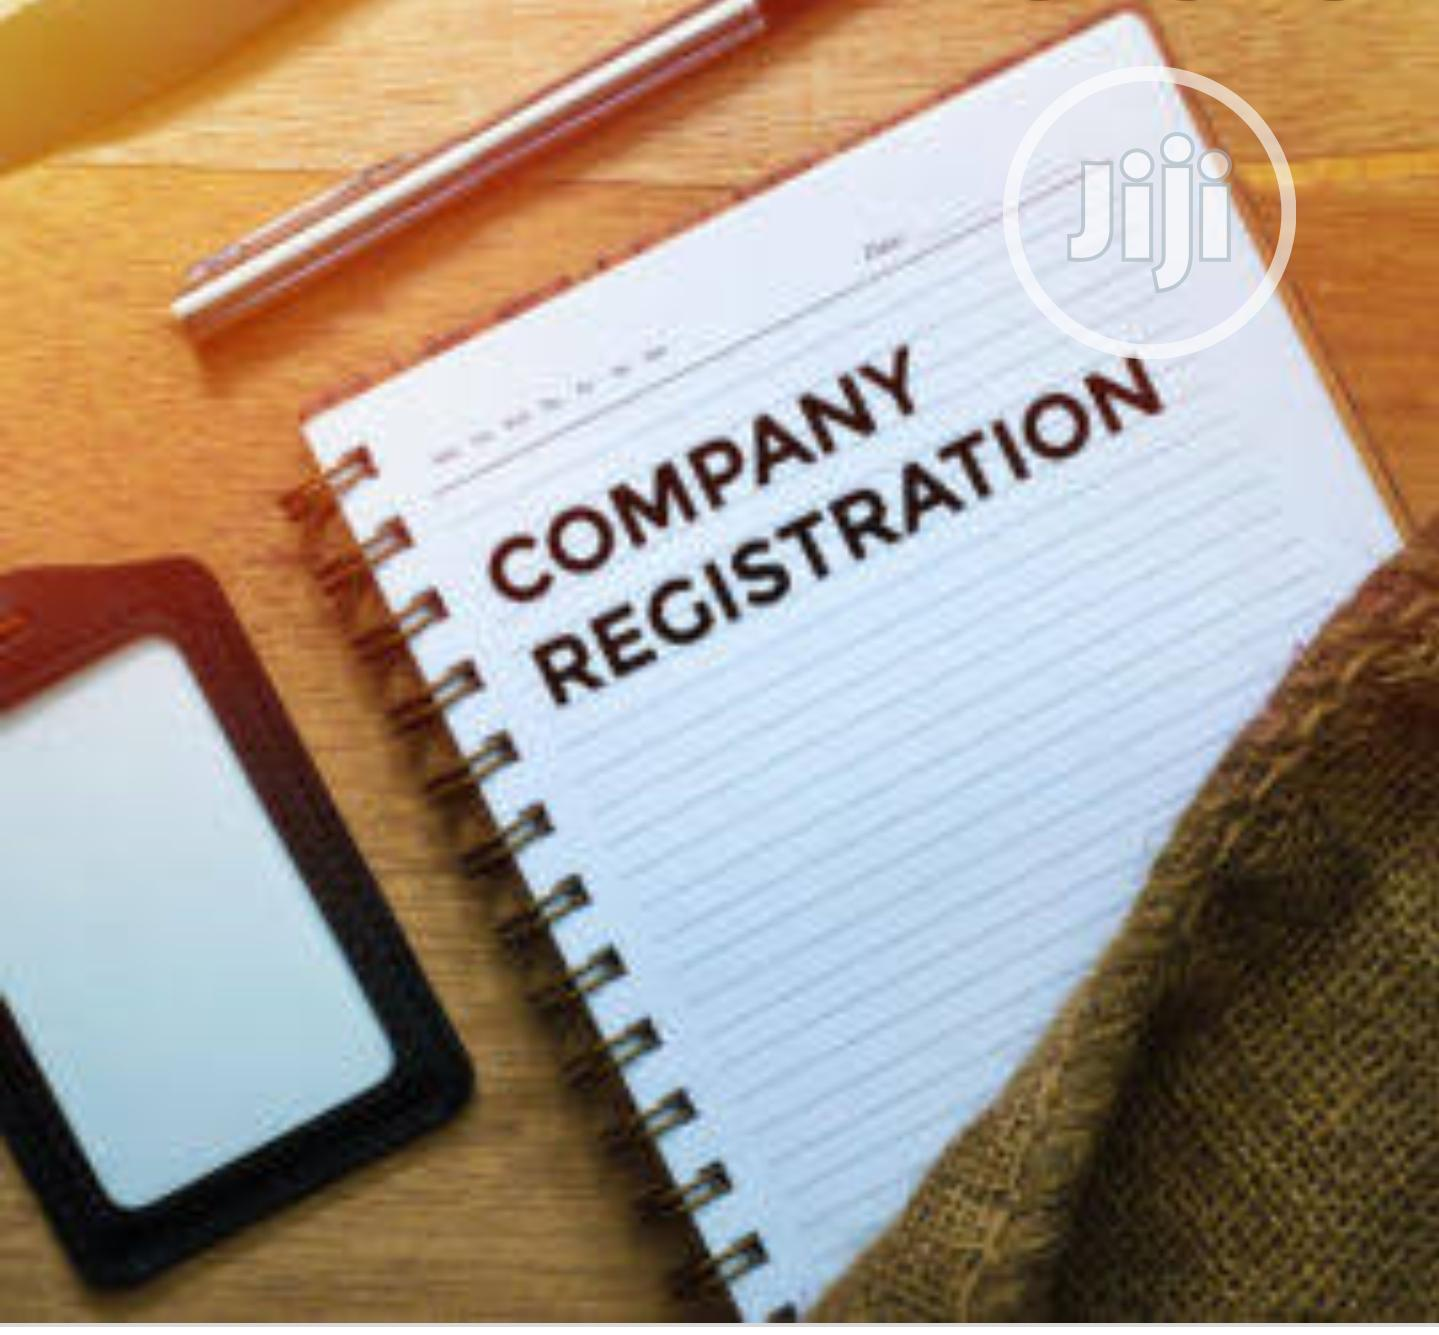 Registration of Business Name and Limited Company | Legal Services for sale in Oshodi, Lagos State, Nigeria